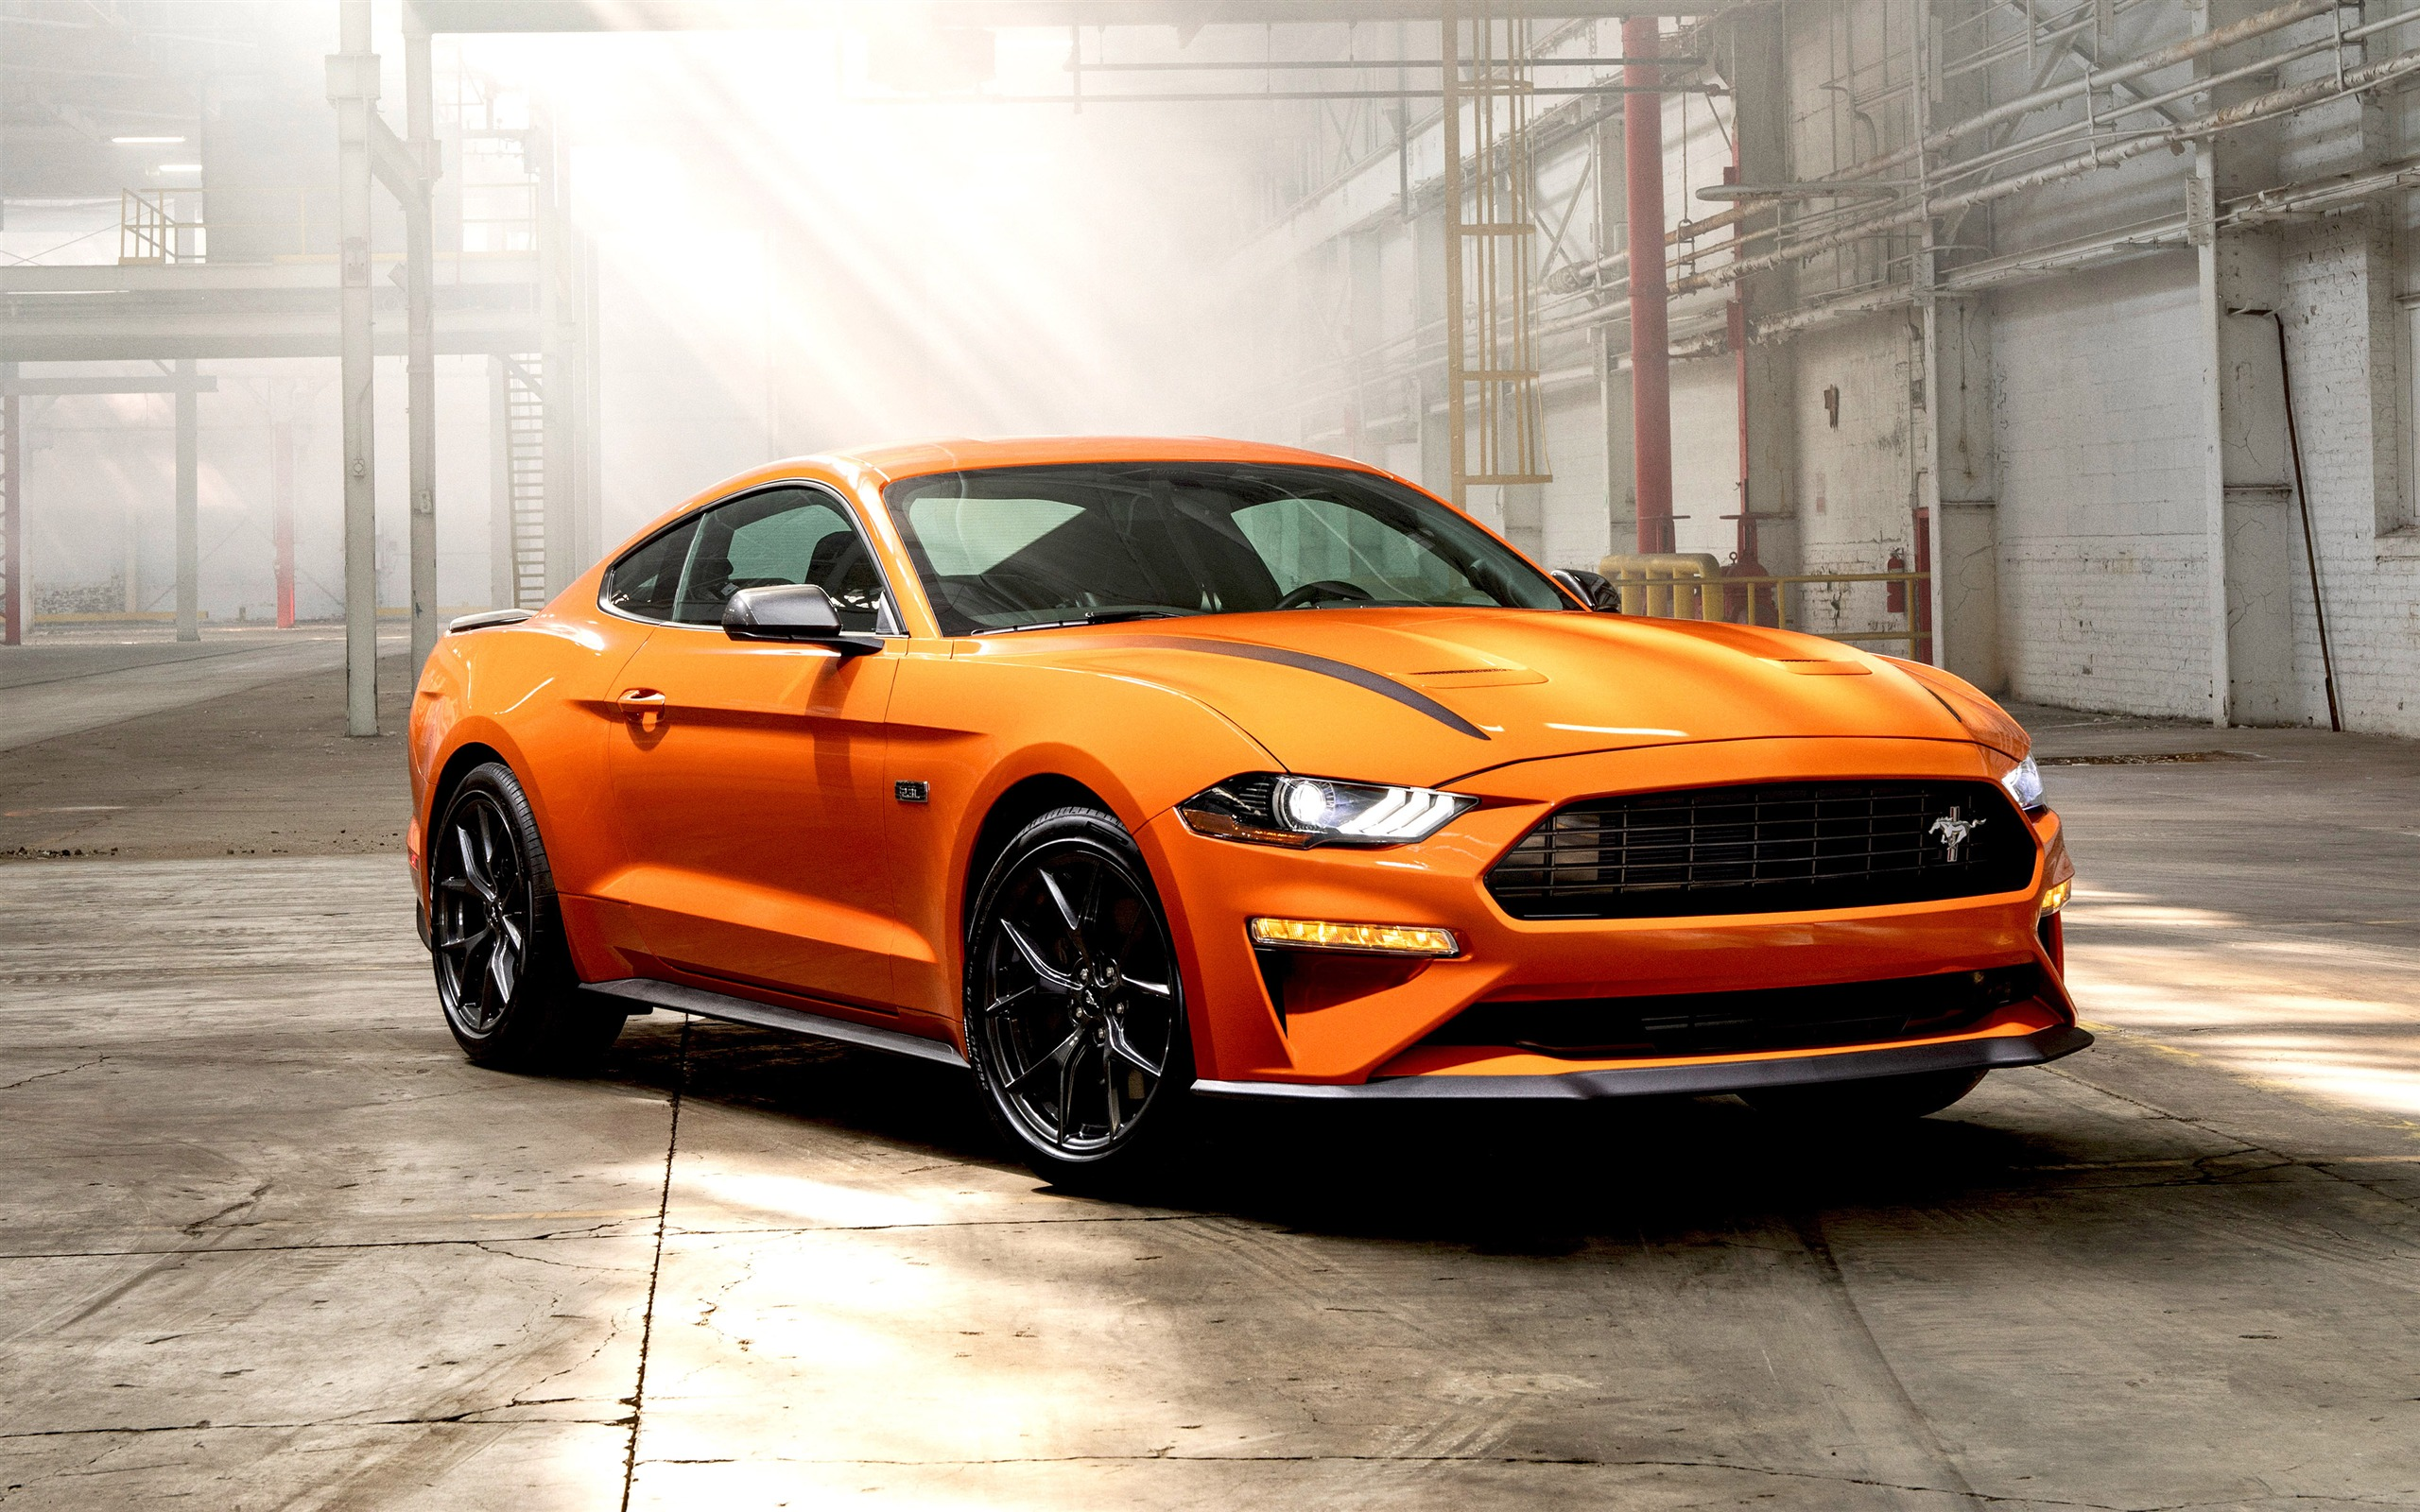 2020 ford mustang luxury car hd poster preview